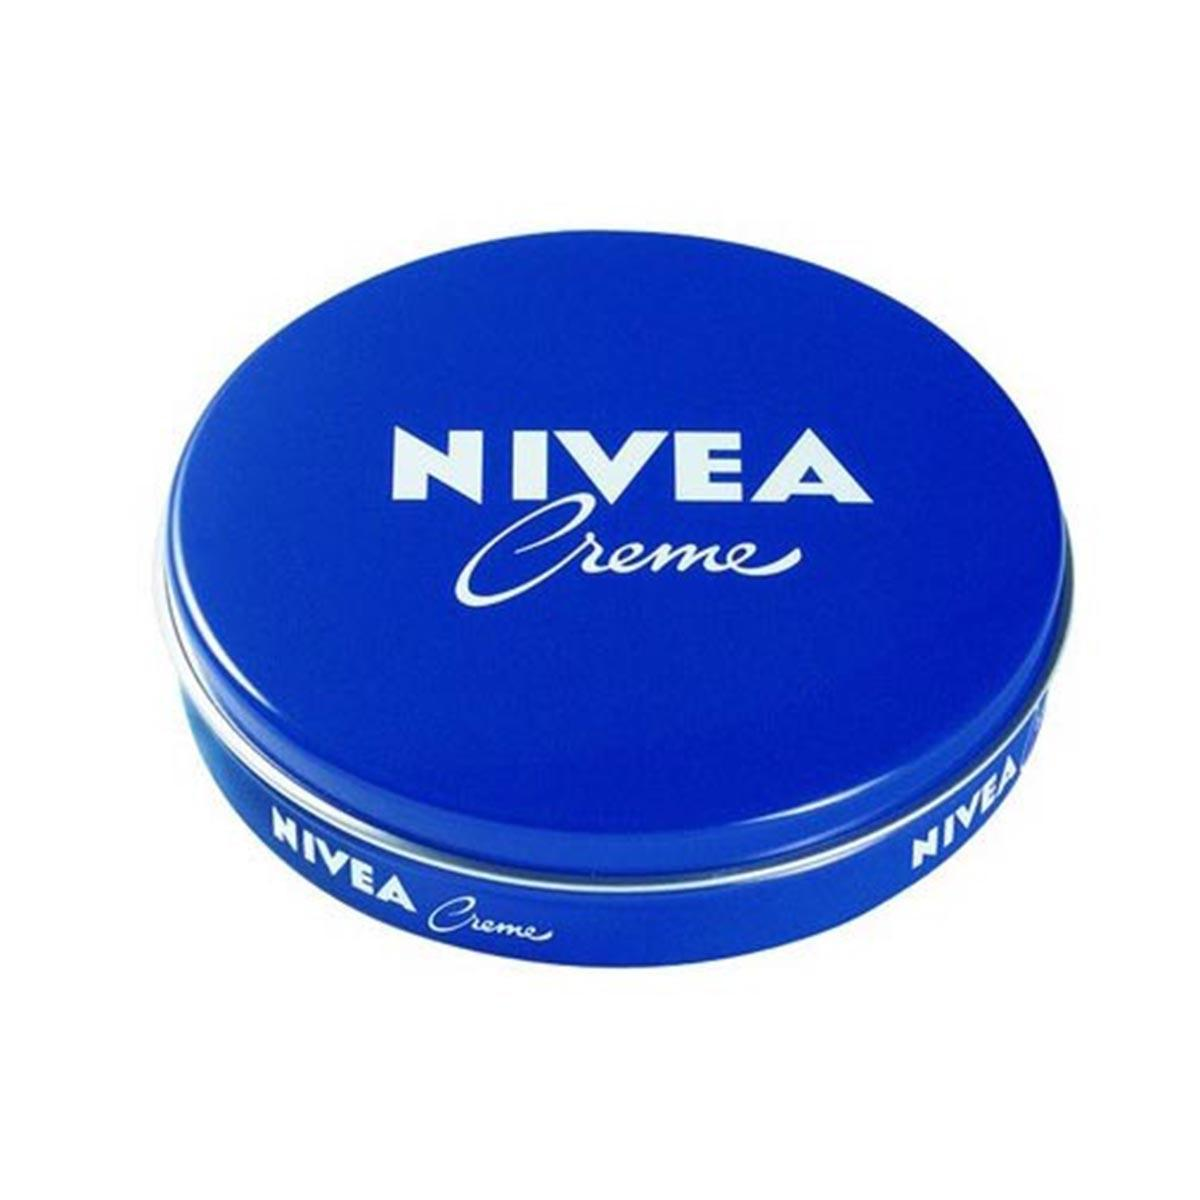 Nivea fragrances Cream 75ml